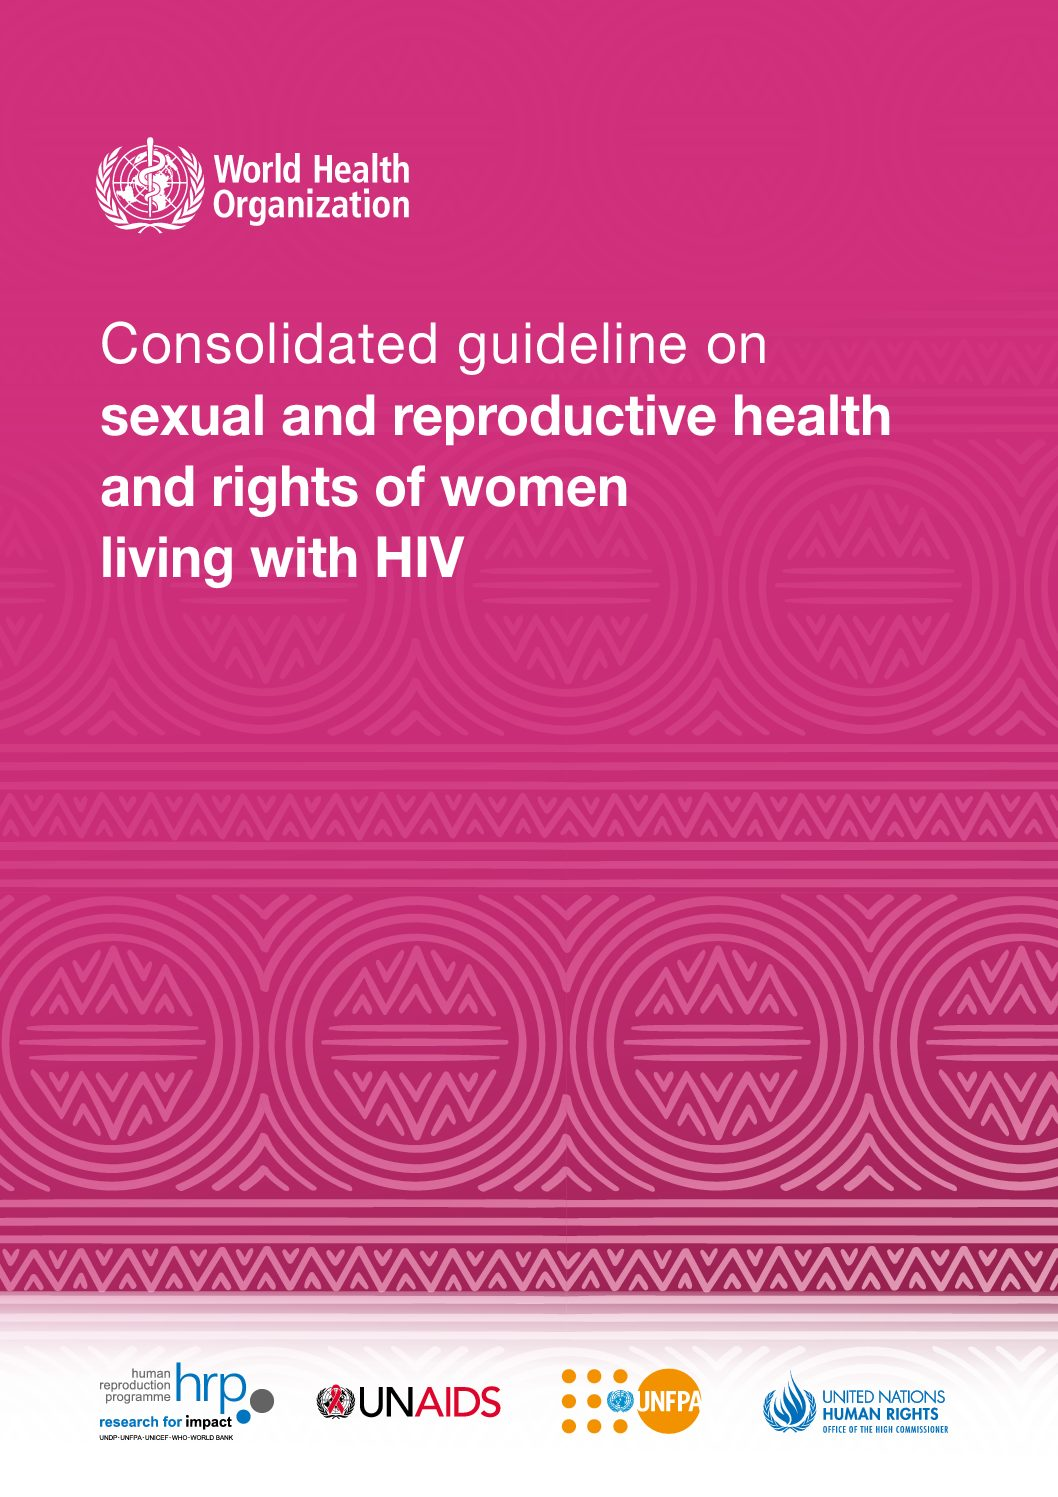 Consolidated guideline on sexual and reproductive health and rights of women living with HIV